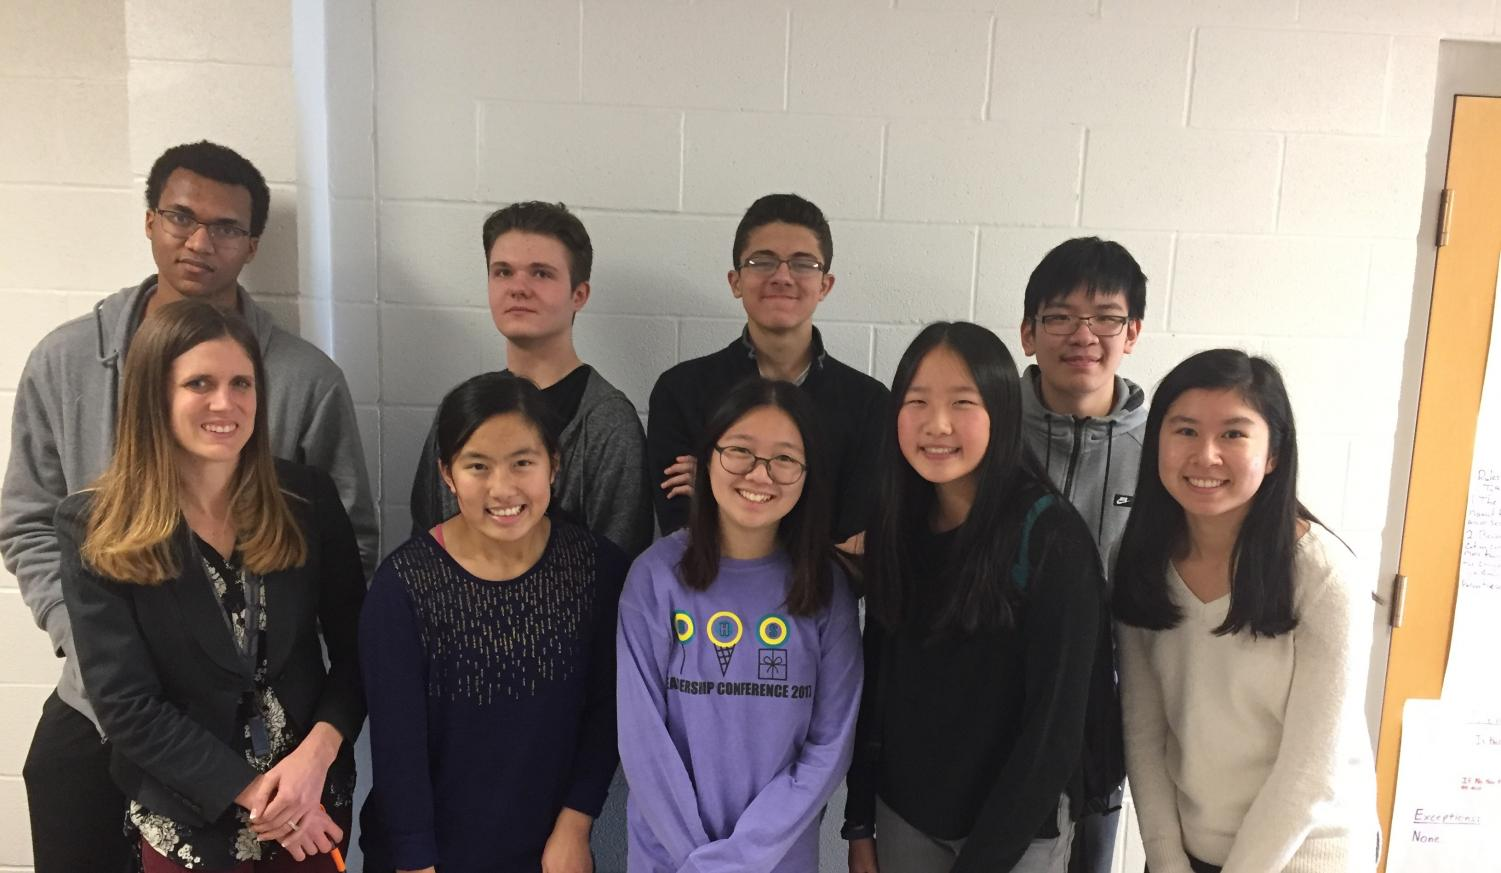 Front row (left to right): Coach Karla Seery, Jing-Jing Shen, Somin Jung, Sunny Wang, Athena Grasso Back row (left to right): Maxwell Rackmill, Peter Soprunov, Zyad Shehadeh, Yang Yu. Photo by Michael Schmidt